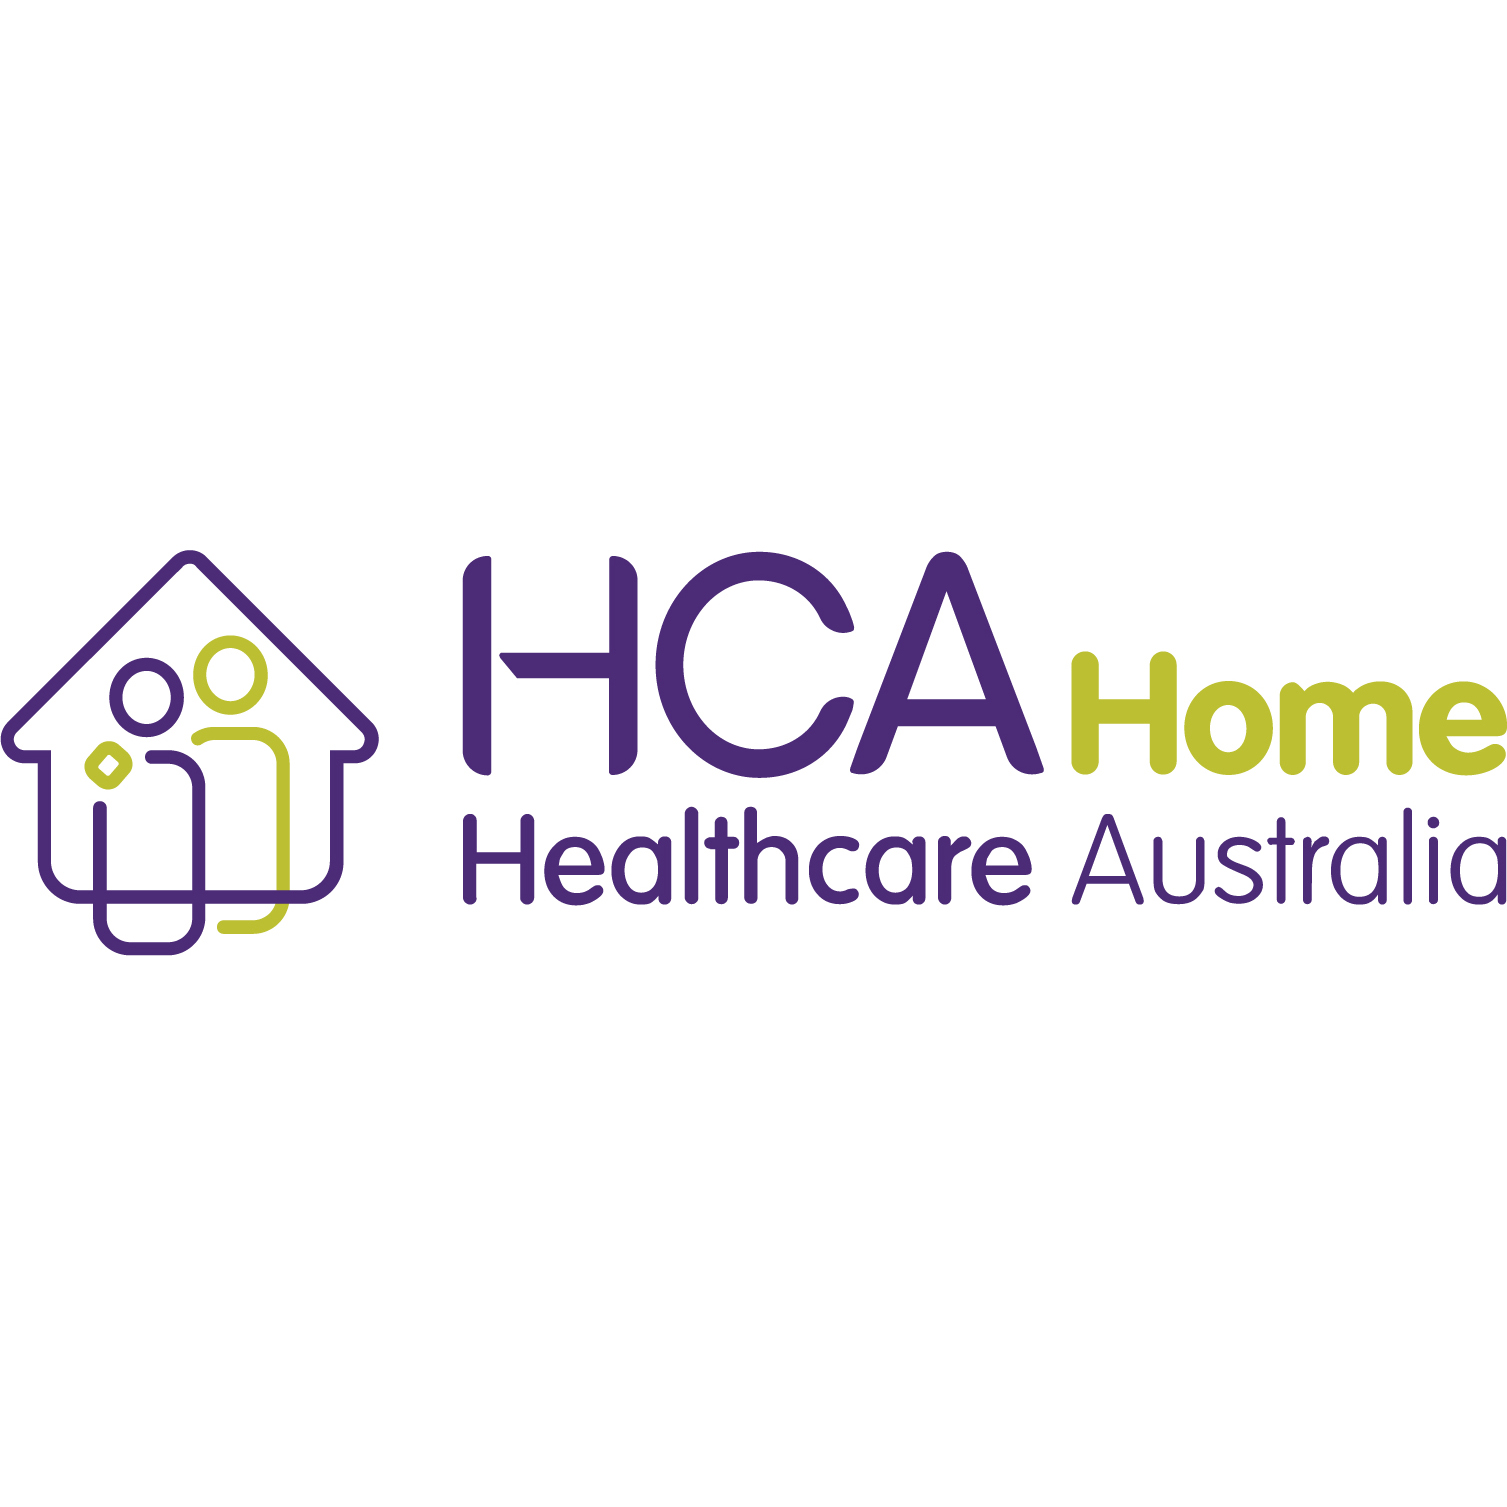 HCA Home Healthcare Australia